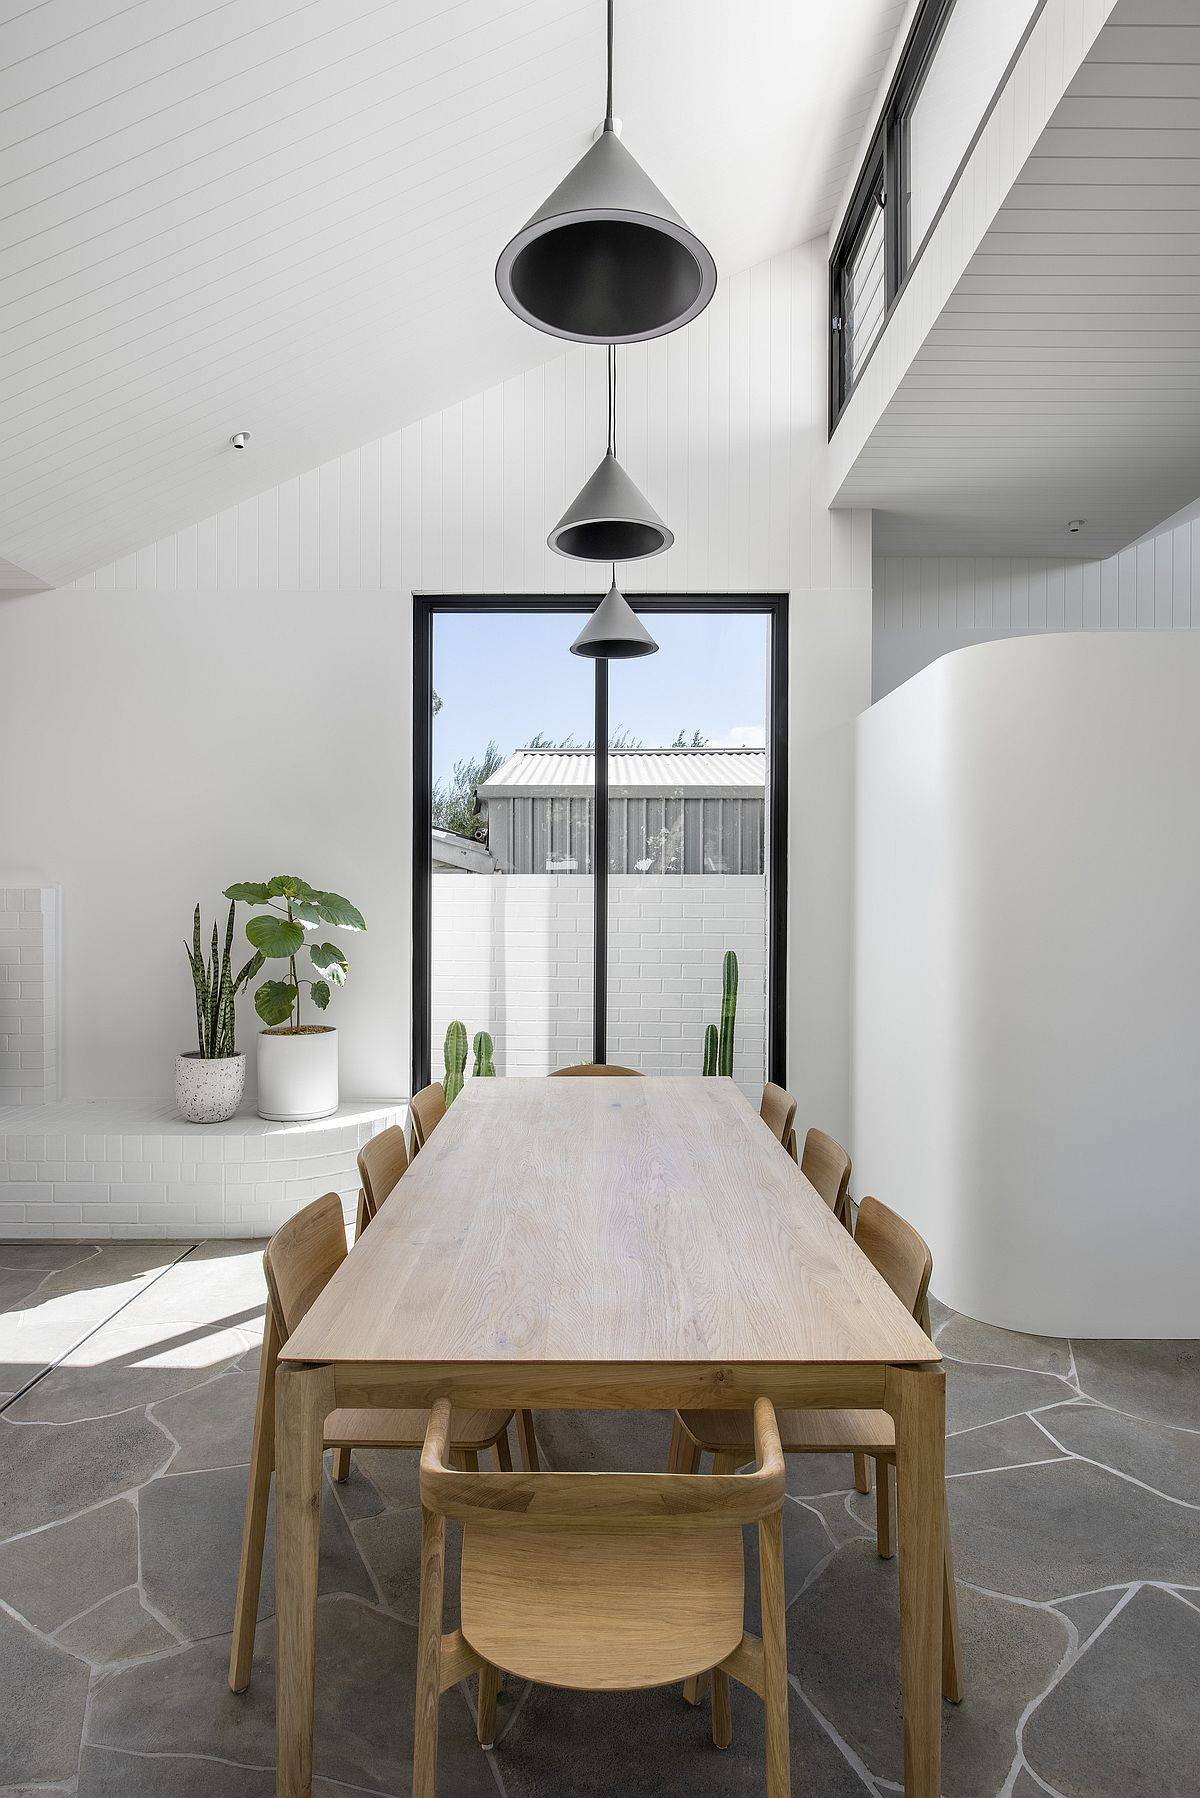 Sloped ceiling and black pendant lights turn this dining area into a special space